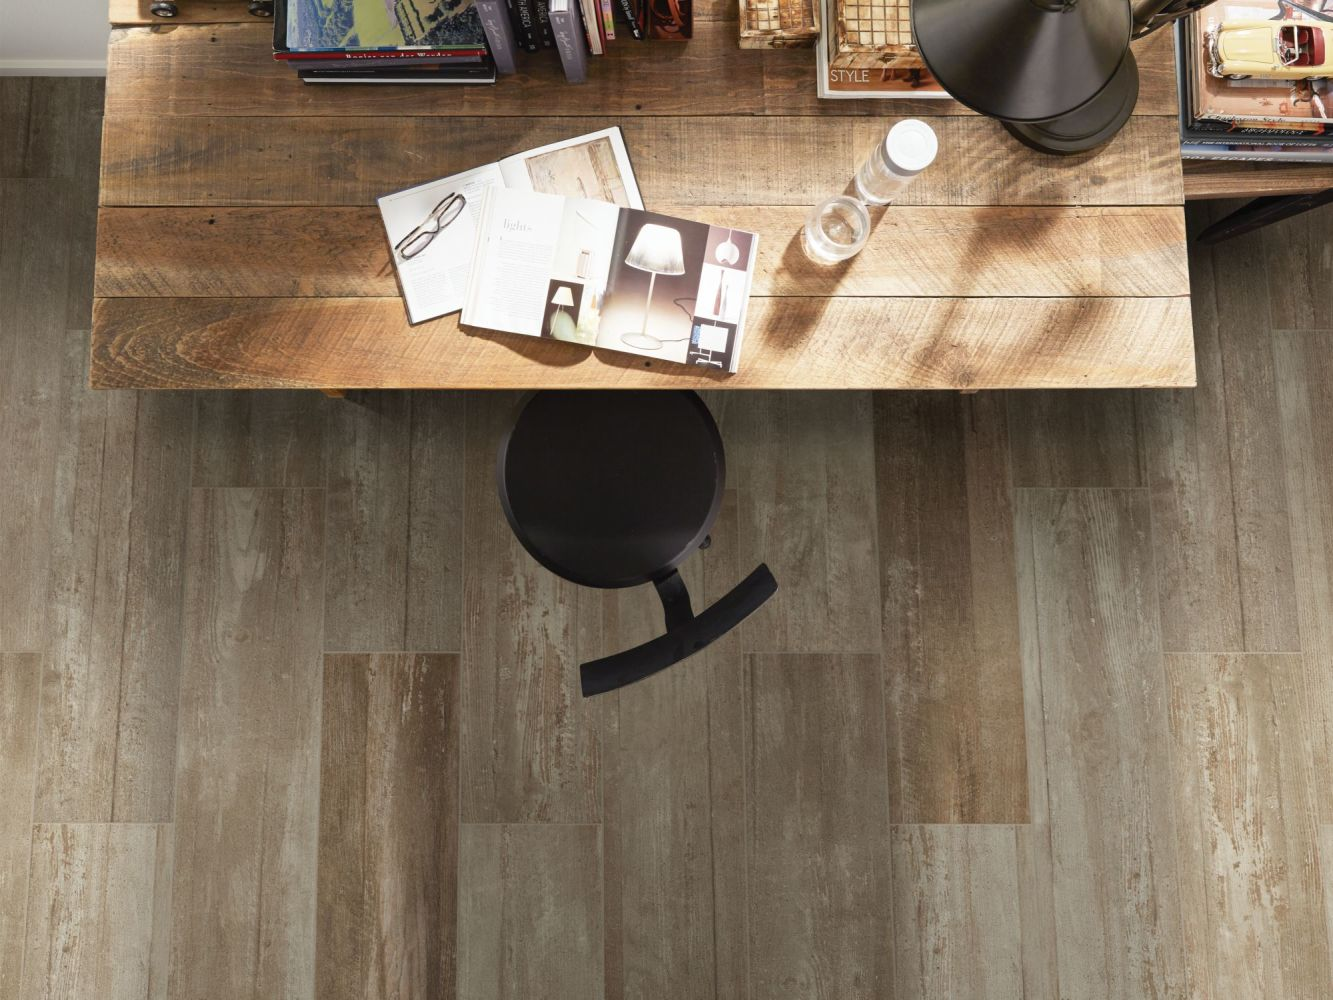 Shaw Floors Ceramic Solutions Glee 8.5×40 Noce 00700_CS62V